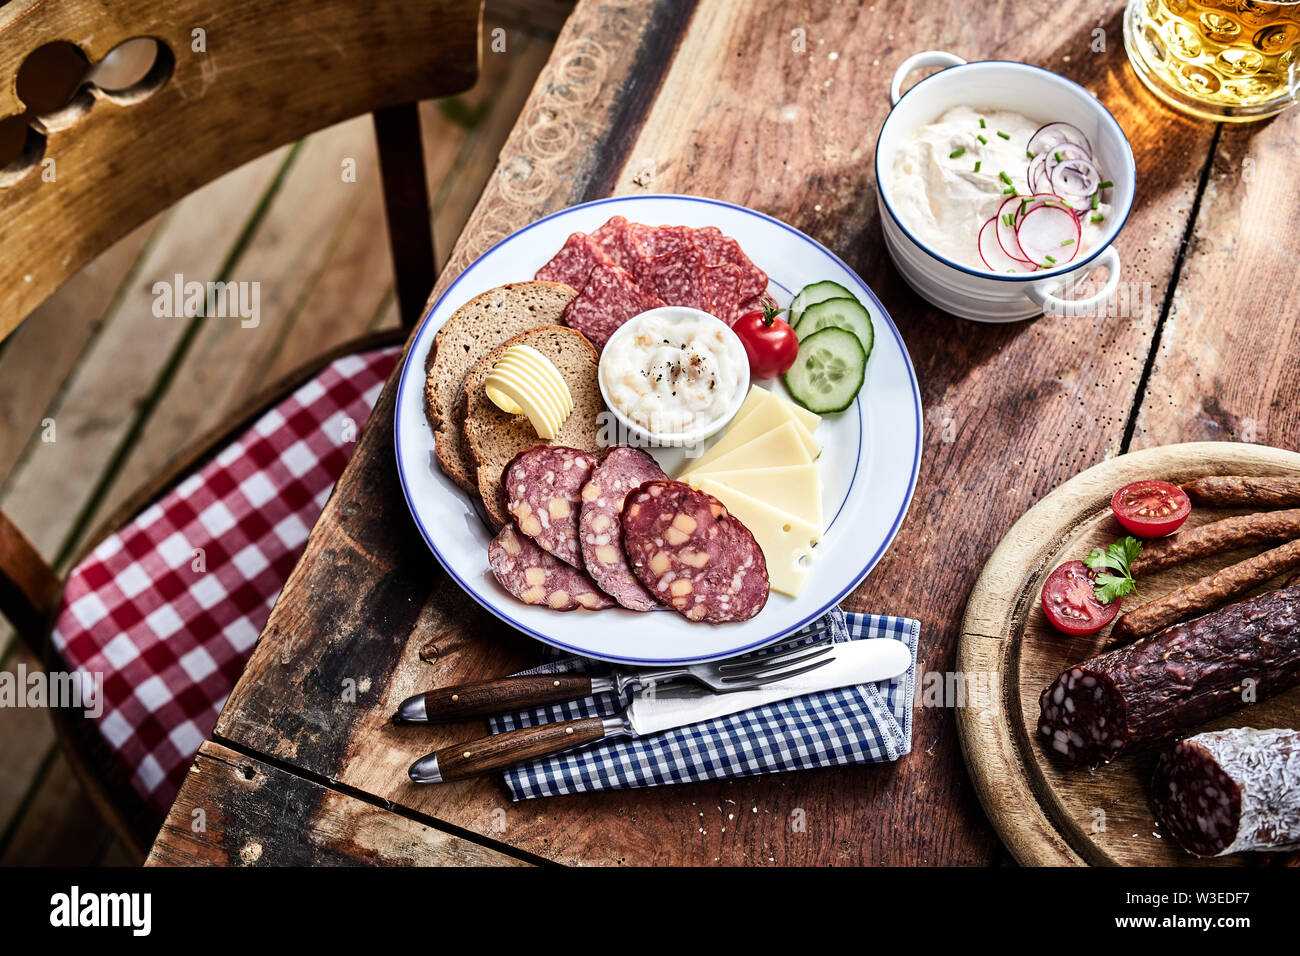 Buffet selection of venison sausages on a wooden board with lunch platter of sliced meat and cheese served with rye bread and salad sides and a mug of Stock Photo